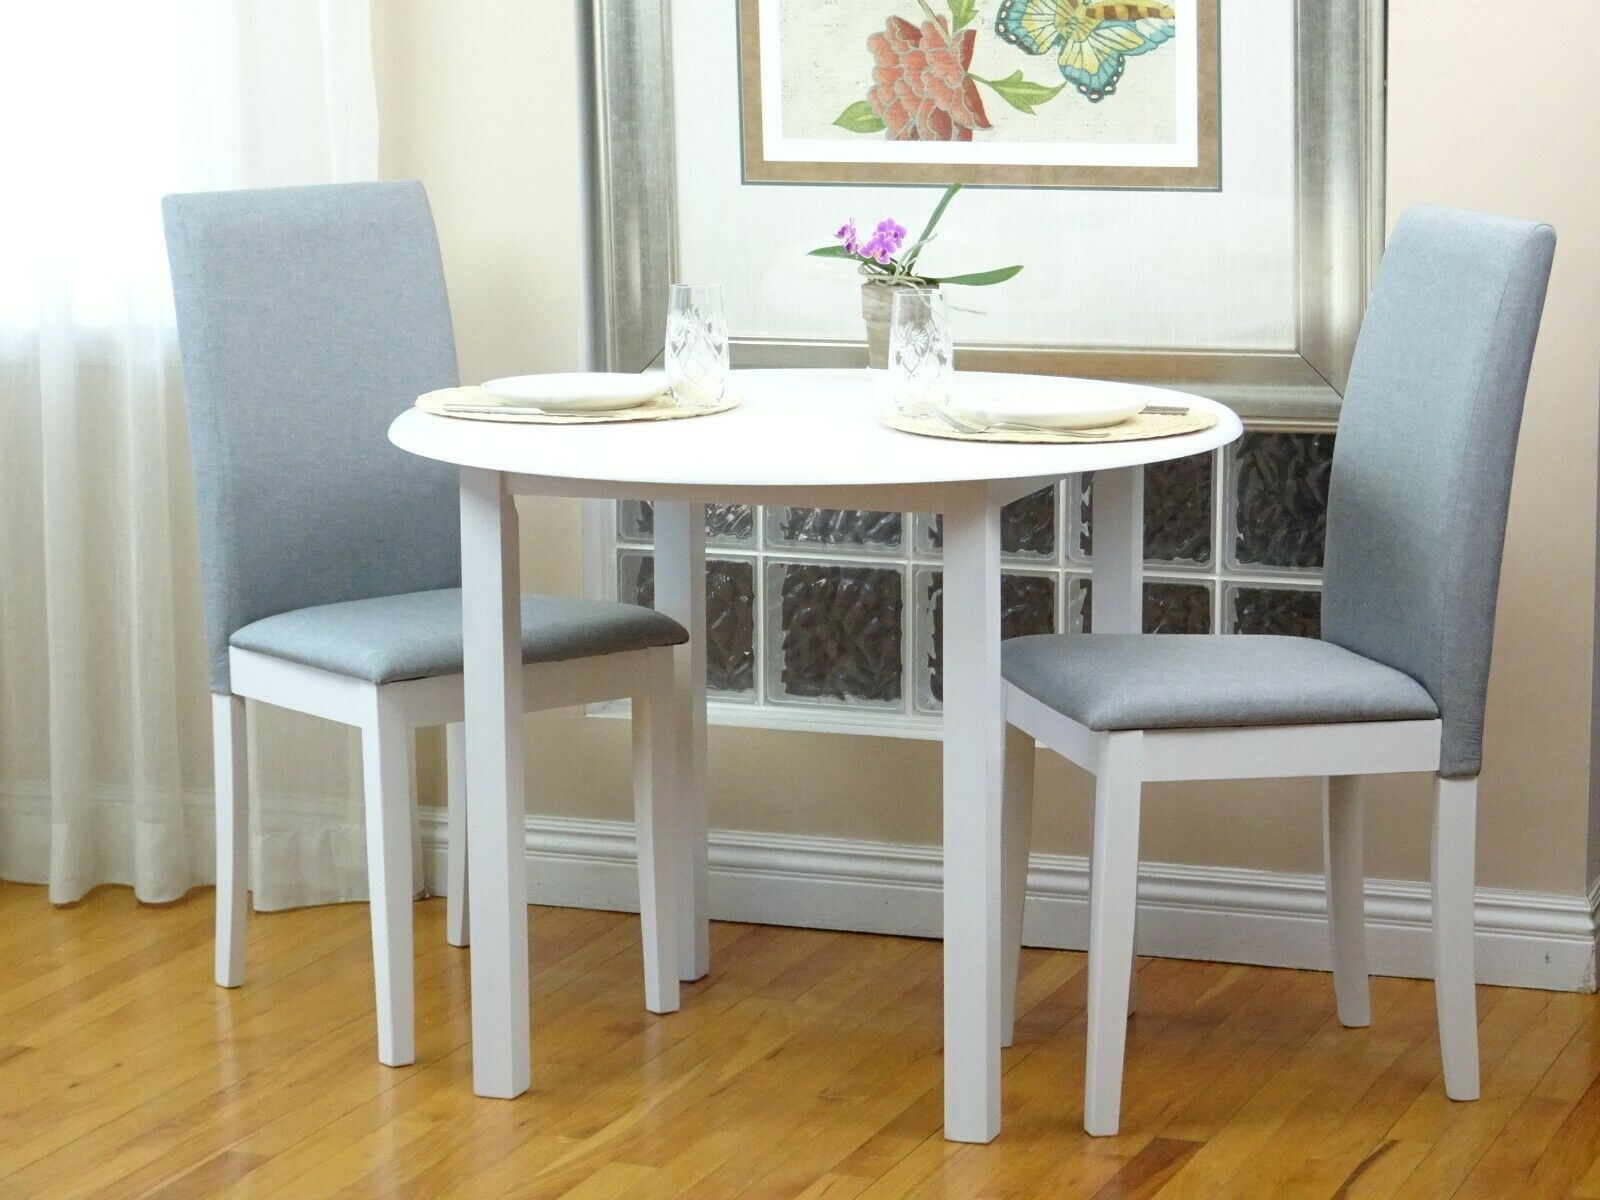 Dining Kitchen 3 Pcs Set Round Table 2 Fallabella Chairs White Finish Dining Table Ideas Of Dinning Tables And Chairs Dining Table Sofas For Small Spaces